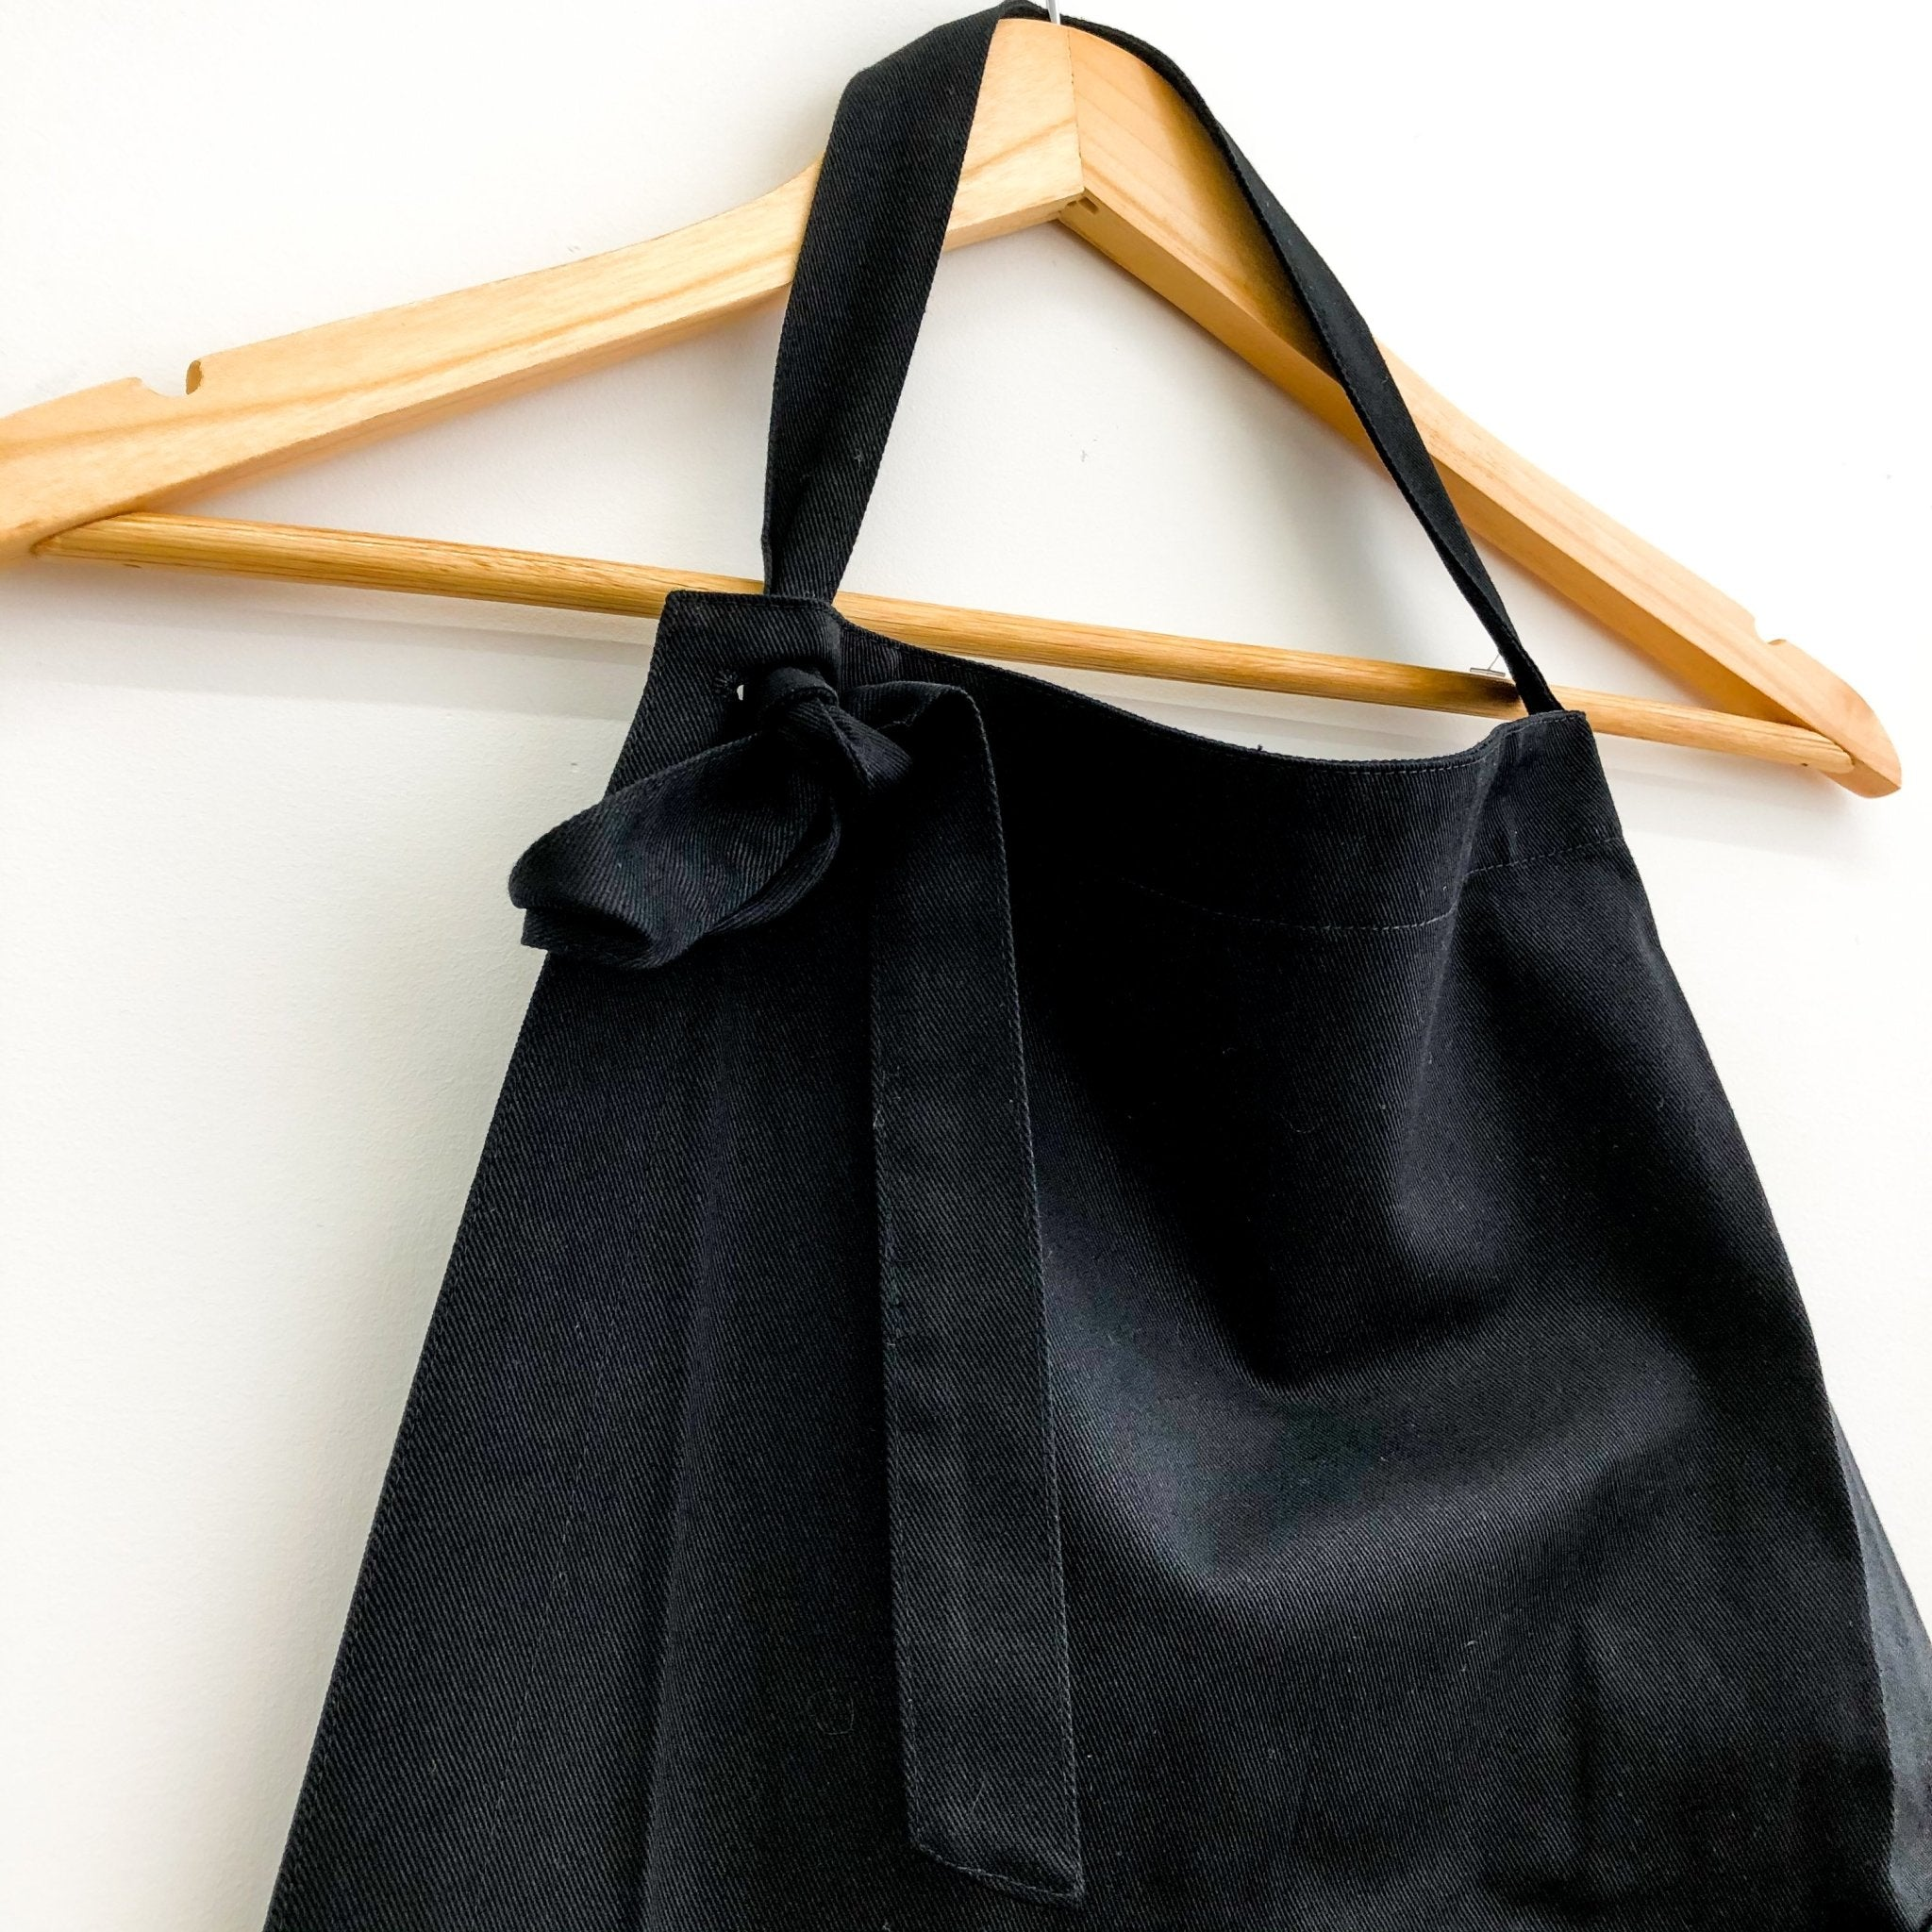 Black Bibbed Apron by Hakui (Hakui 6803-9) - tortoise general store